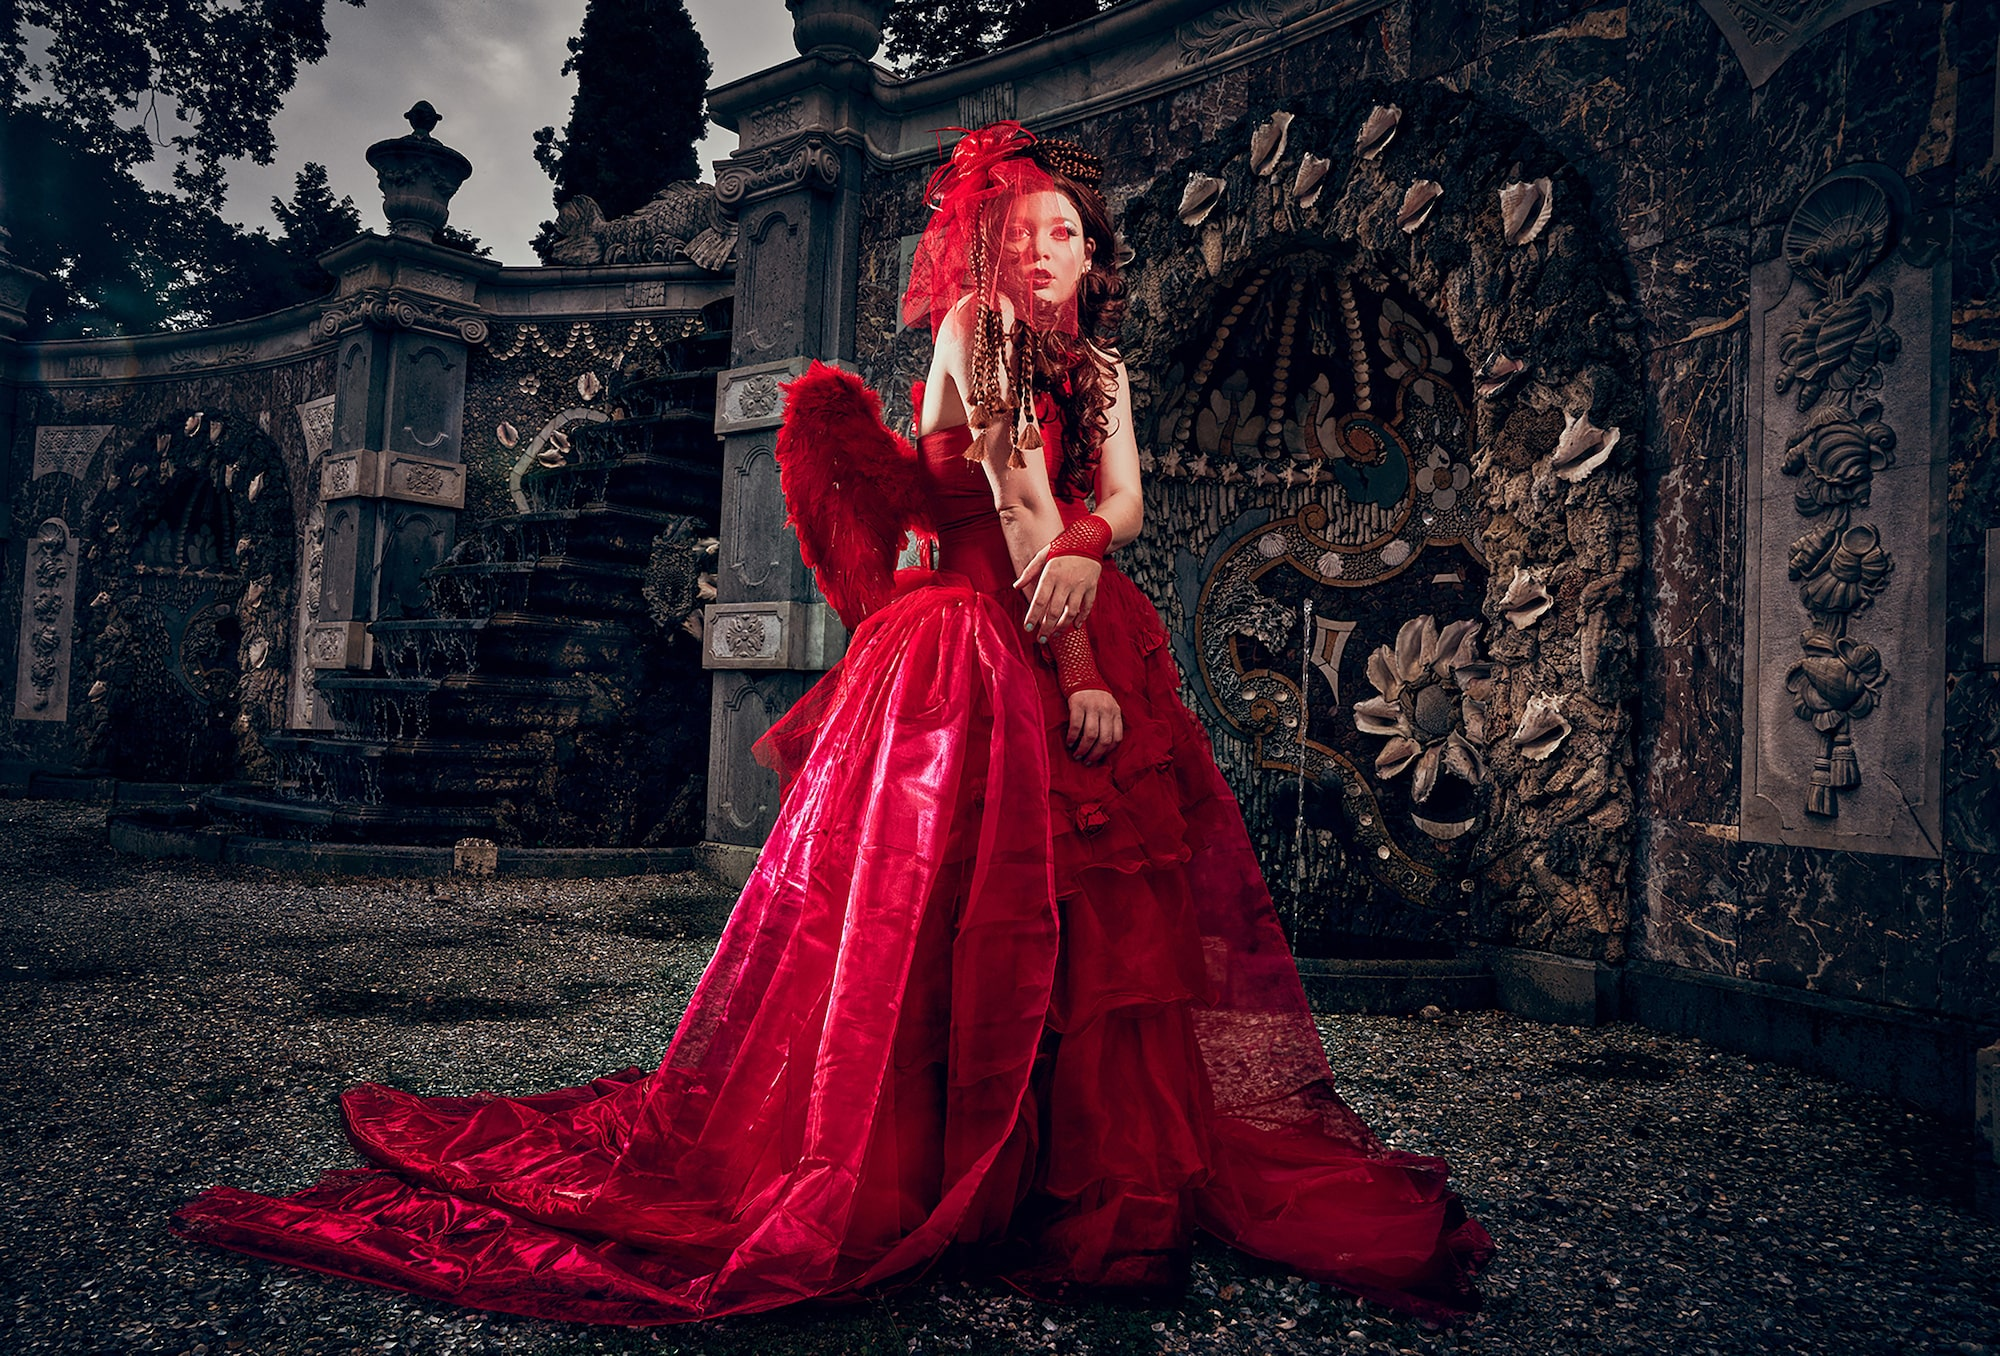 frank doorhof sony alpha 7RII lady wearing a red dress poses in front of a gothic building